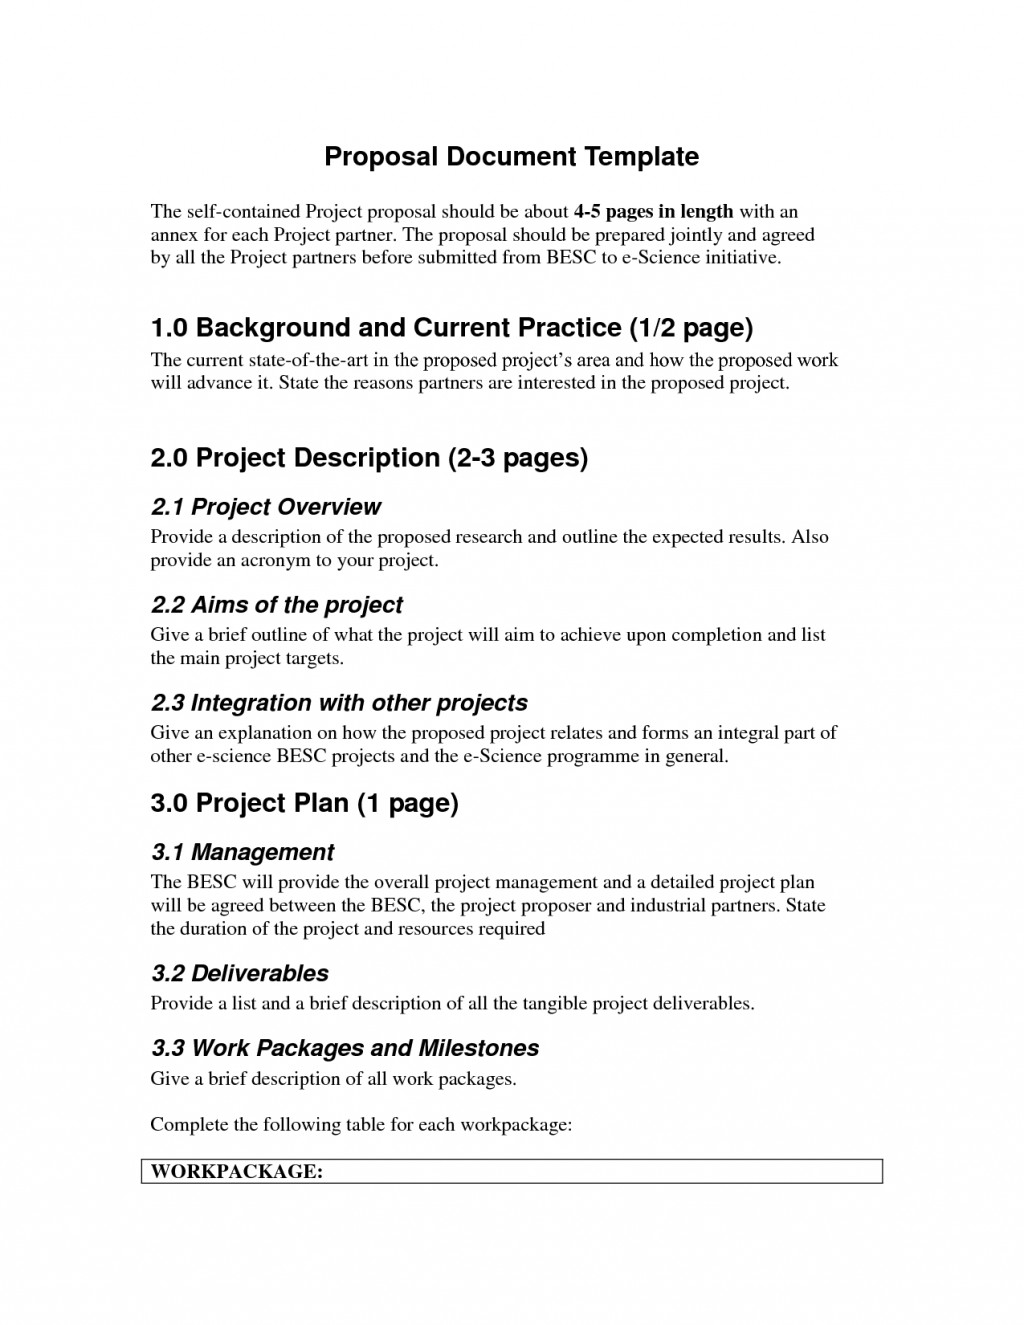 004 Essay Proposal Template Topics Before Students How Long To Write Page In Hours Good About Yourself Should It Take Does Fast Do You On Book Example Fearsome 3 Gun Control Double Spaced Word Count Large